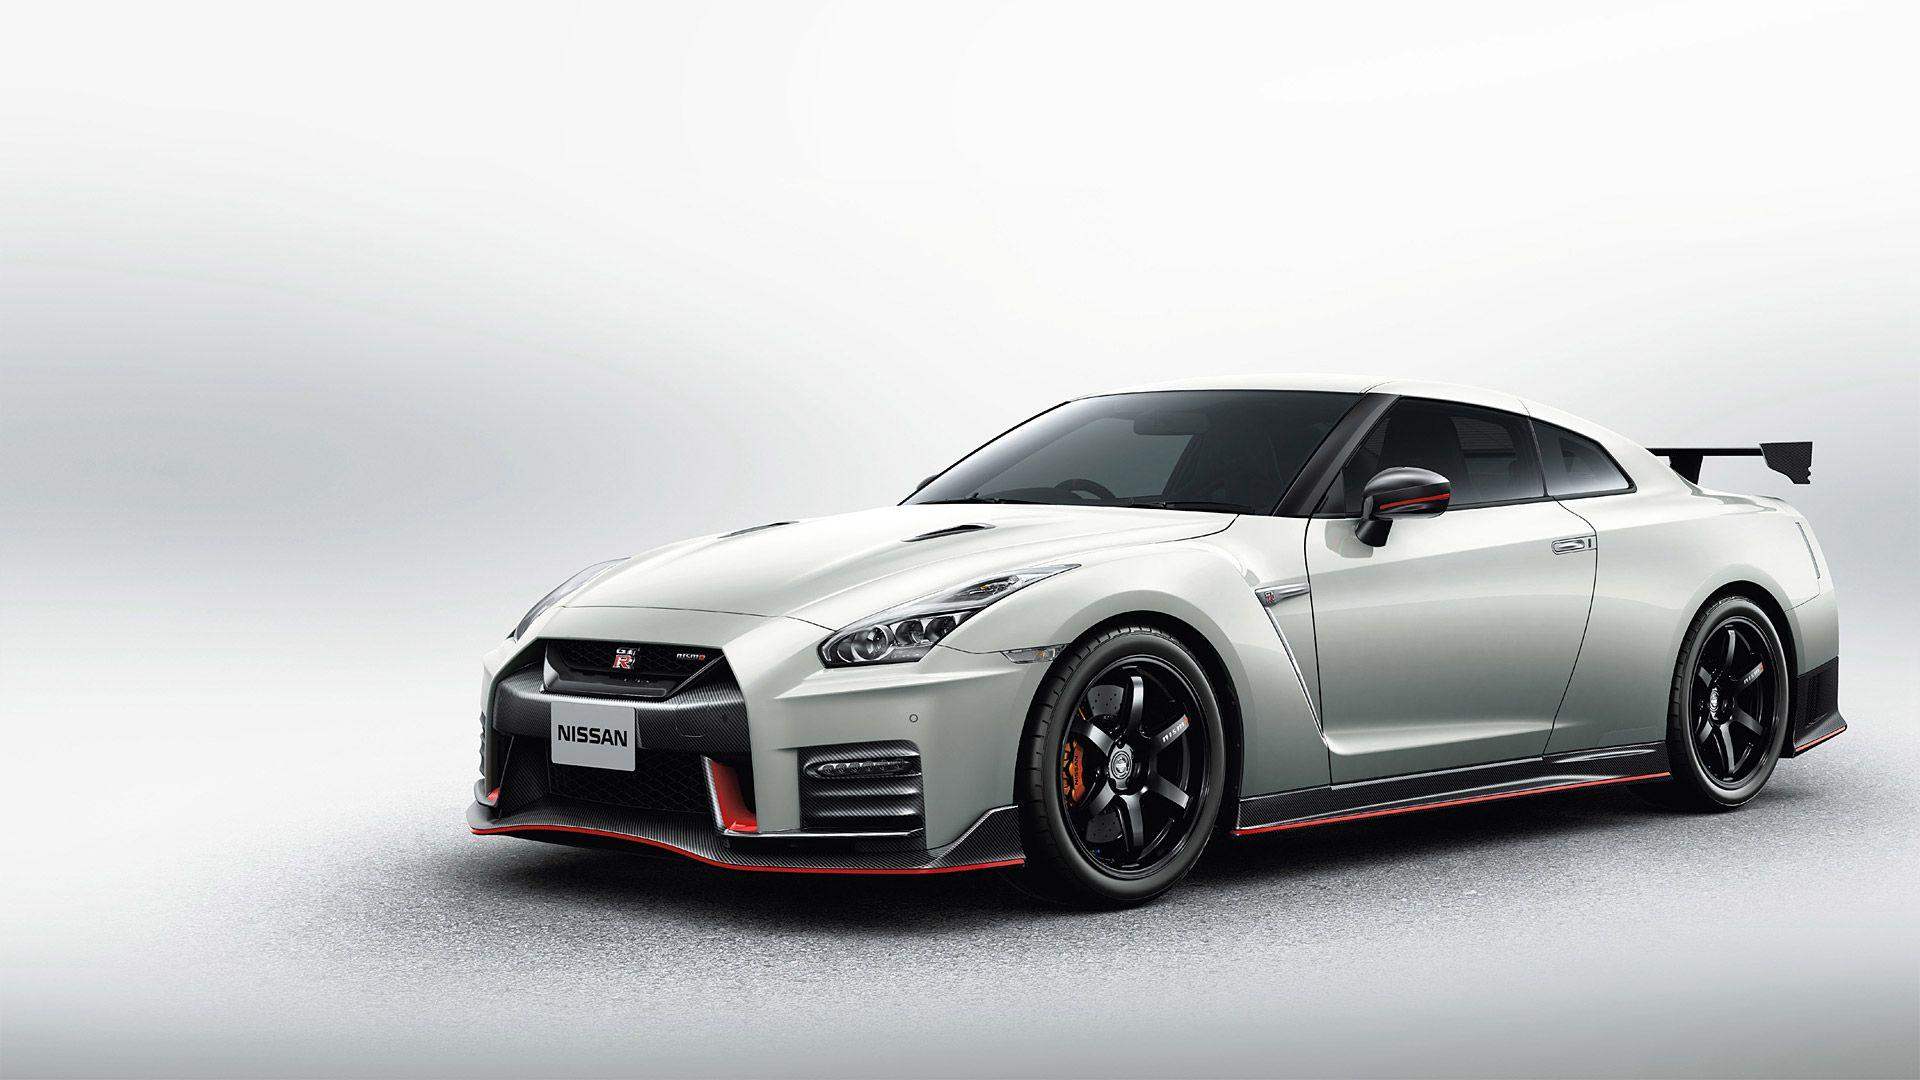 Nissan Gt R Nismo Wallpapers Wallpaper Cave